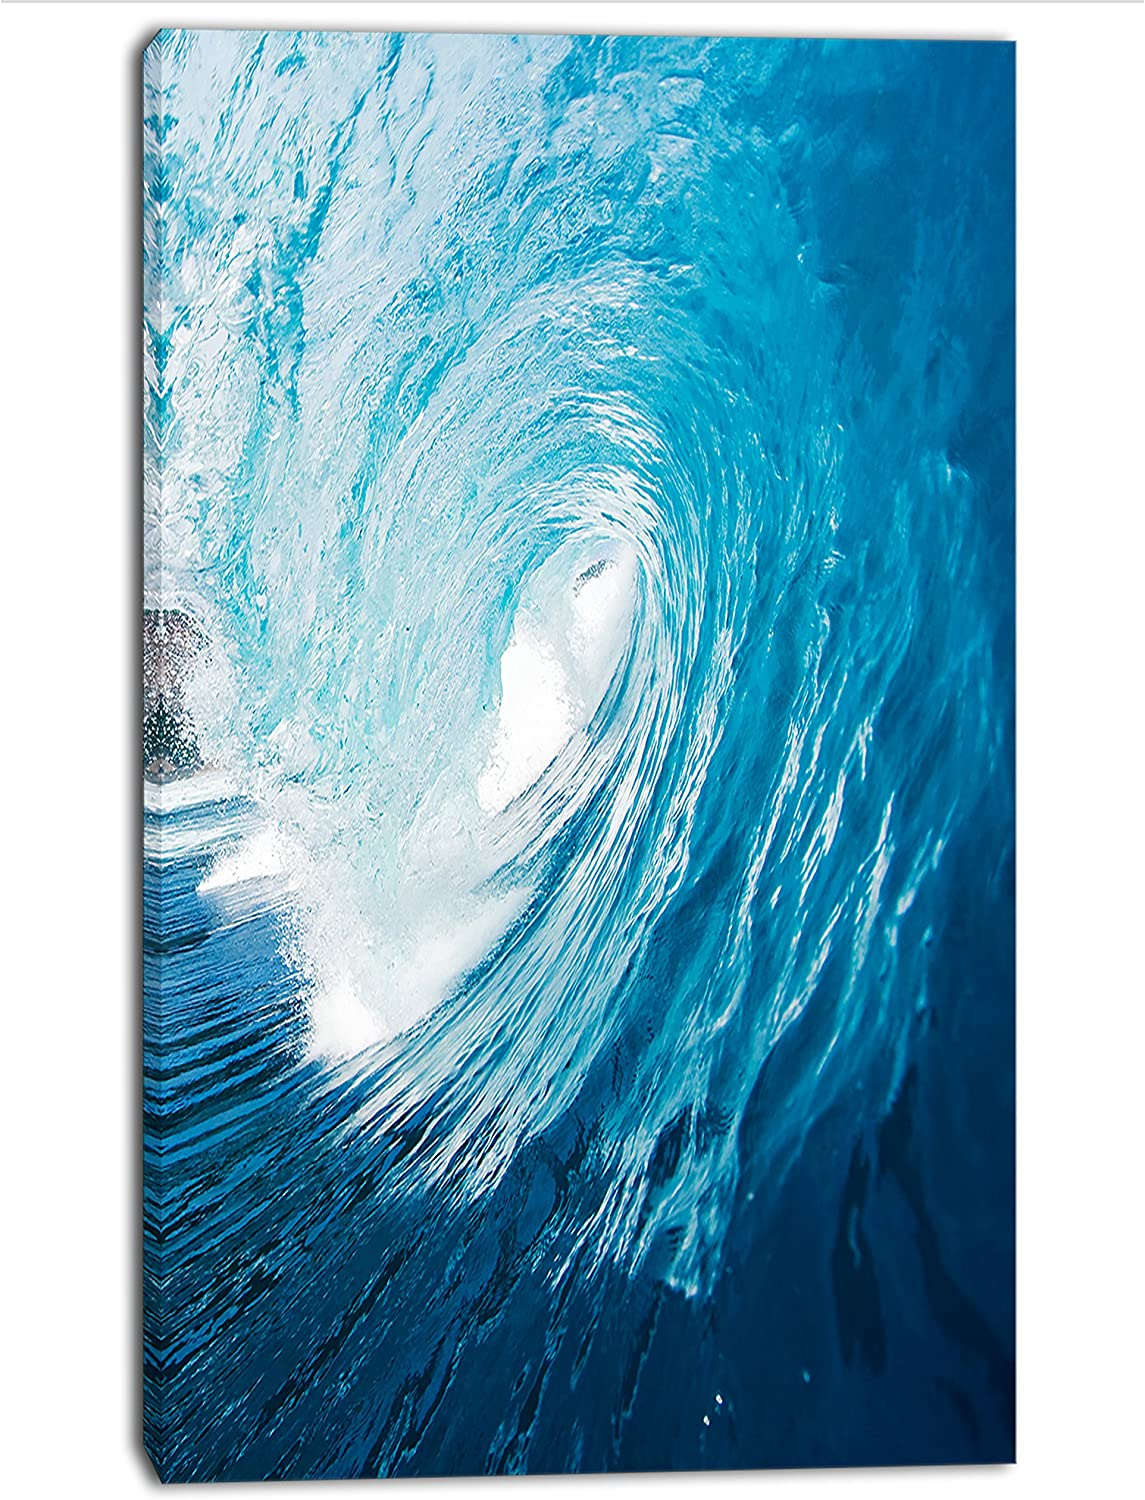 Green Waves Panoramic Canvas Print Modern Art 4 Sizes to Choose Ready to Hang